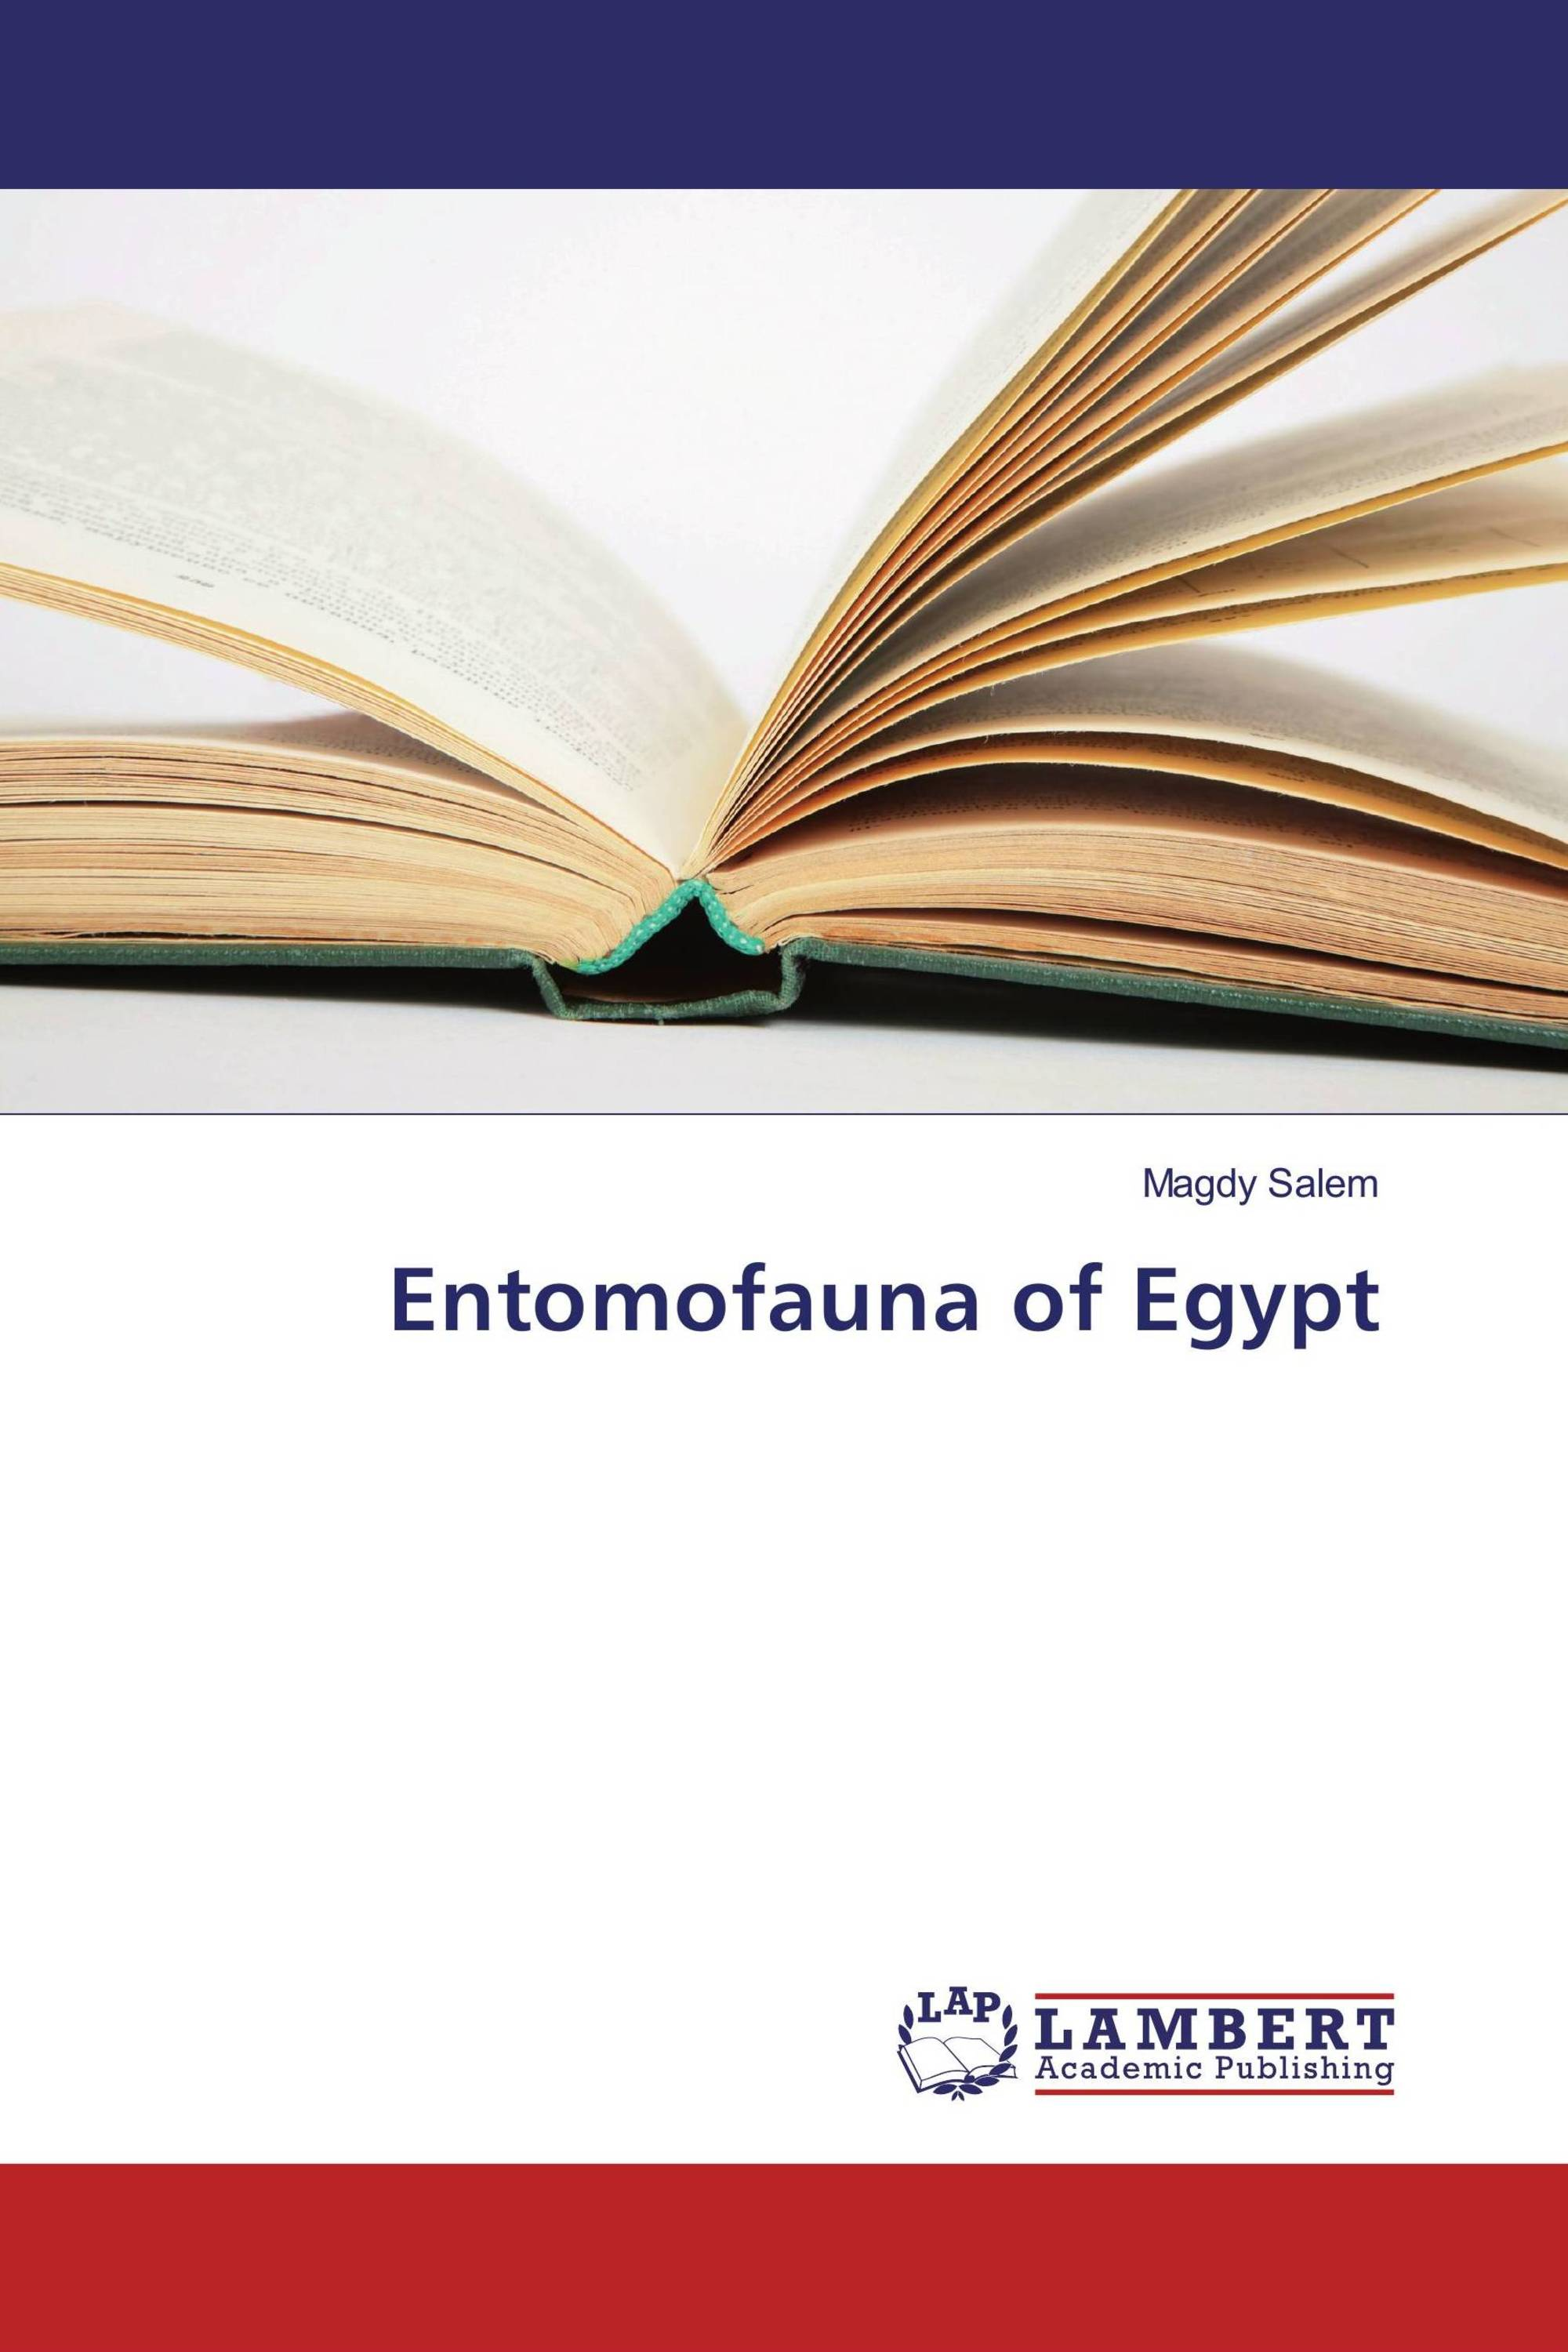 Entomofauna of Egypt